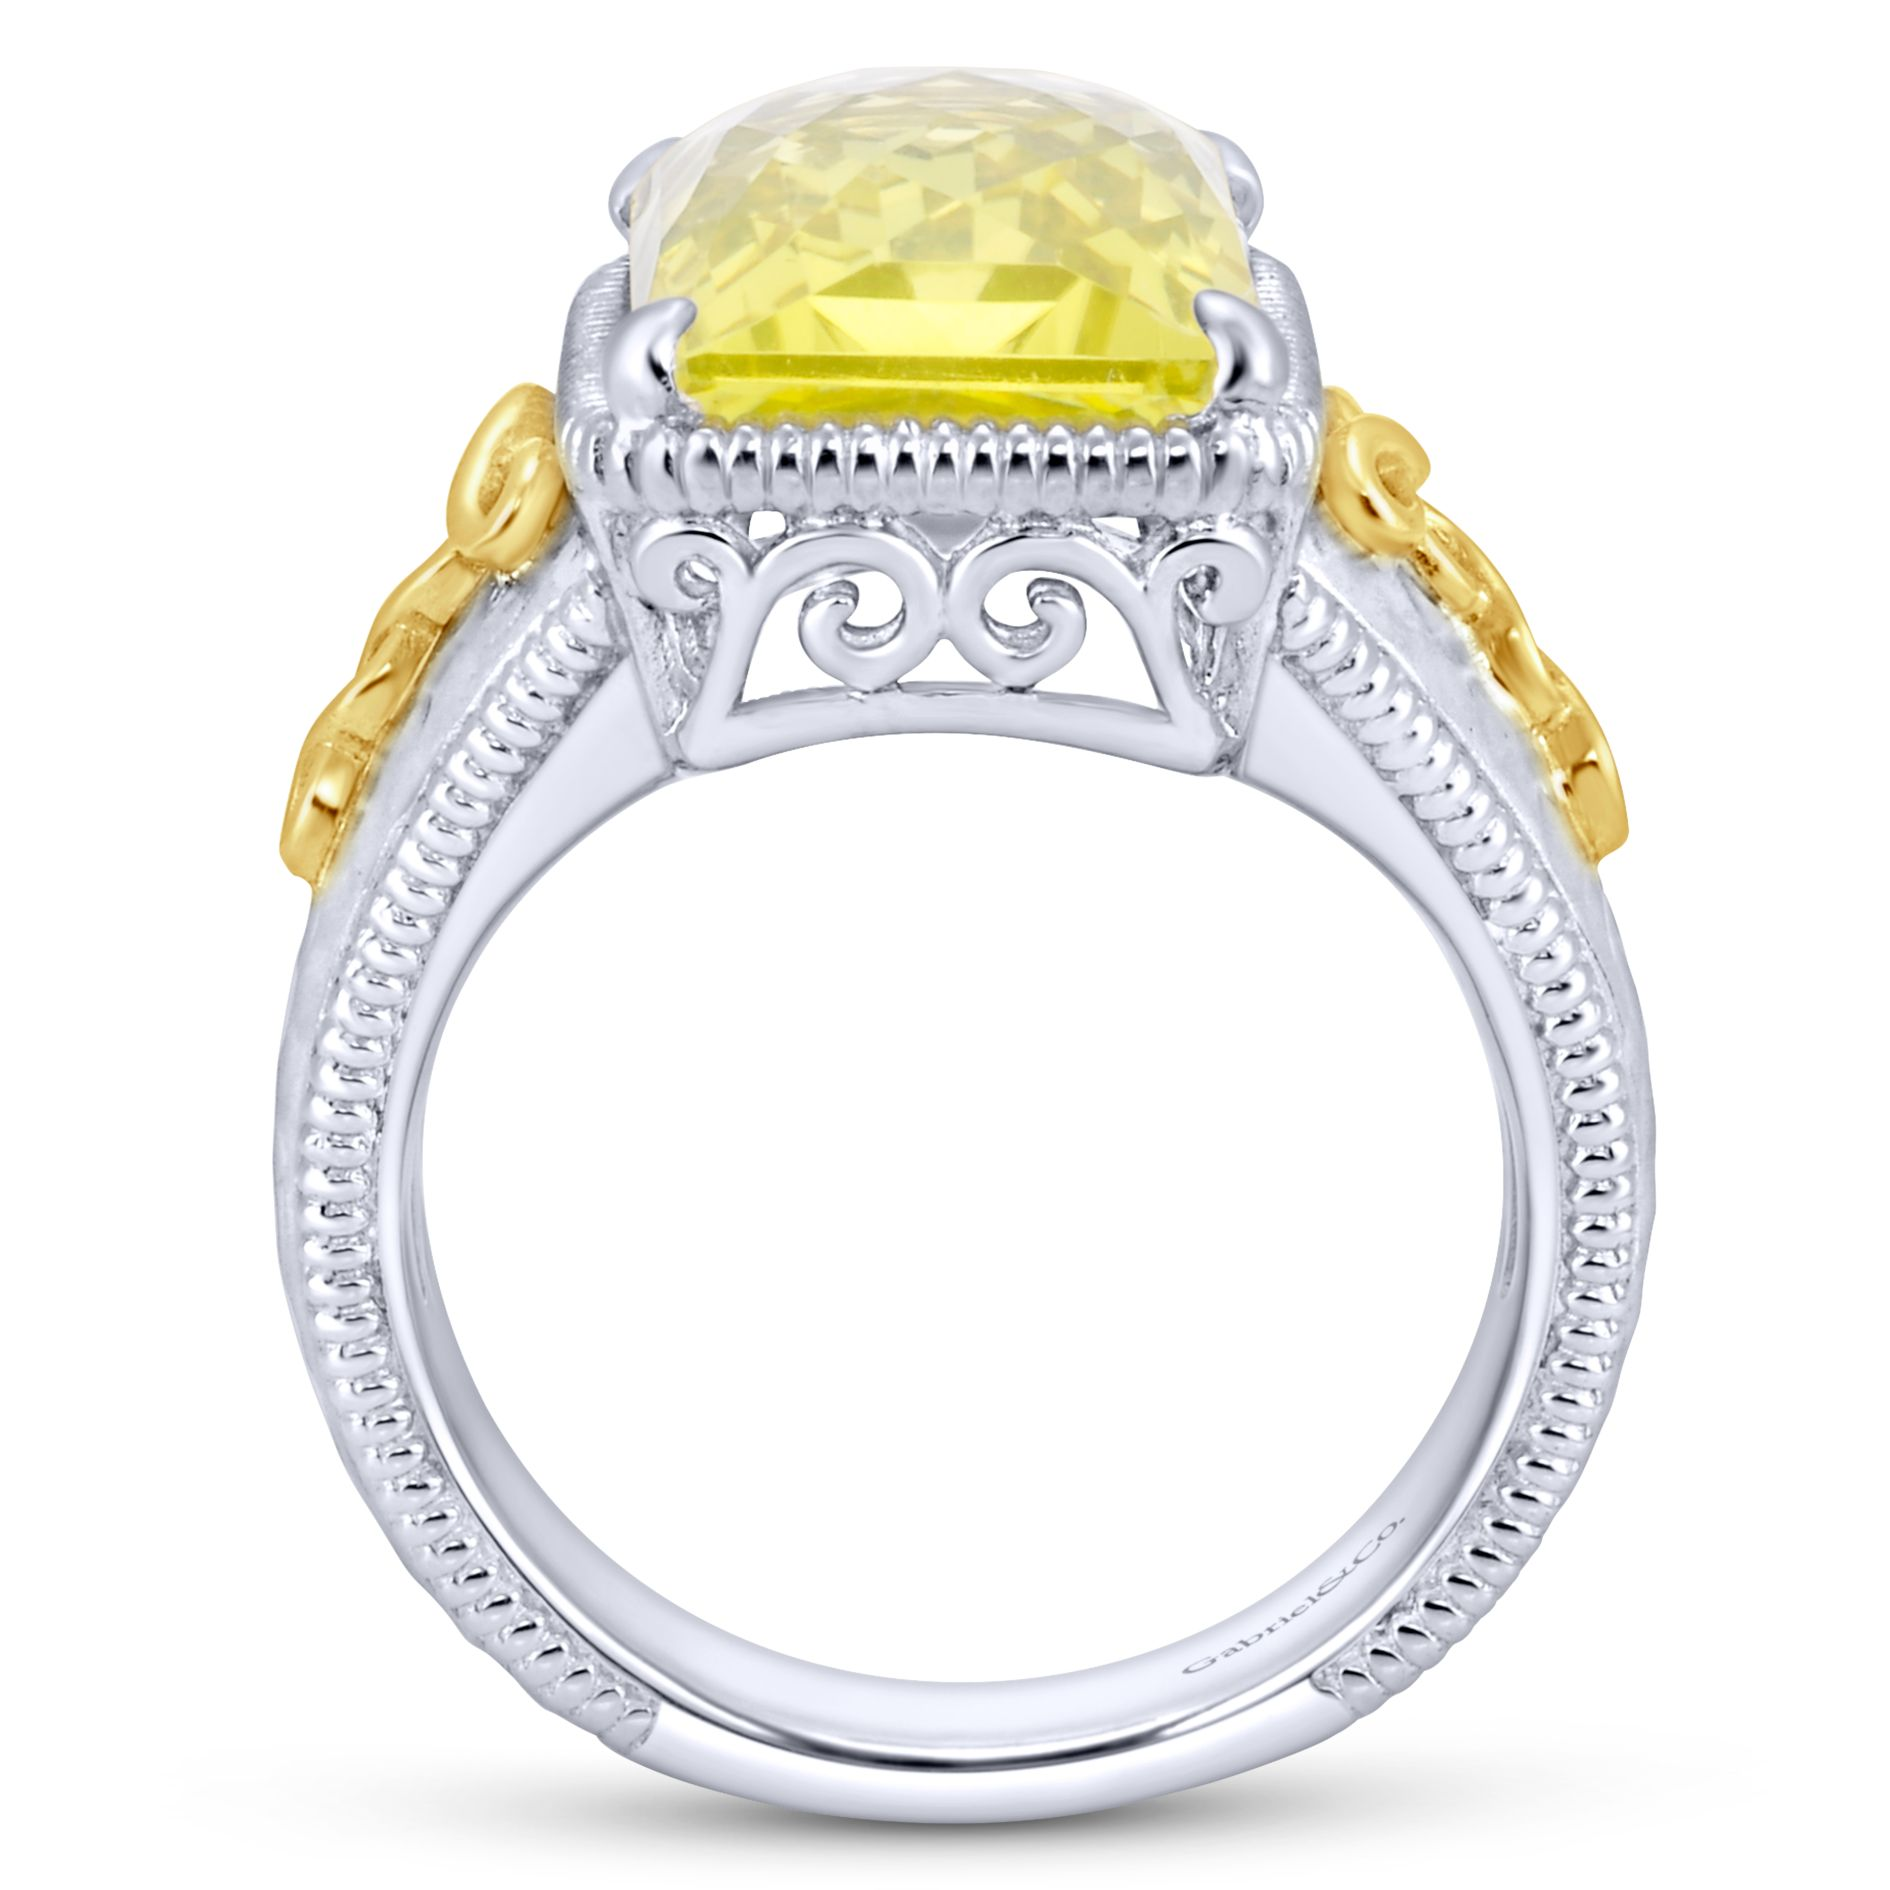 Rings - SILVER/18K YELLOW GOLD FASHION LEMON QUARTZ LADIES RING - image #2